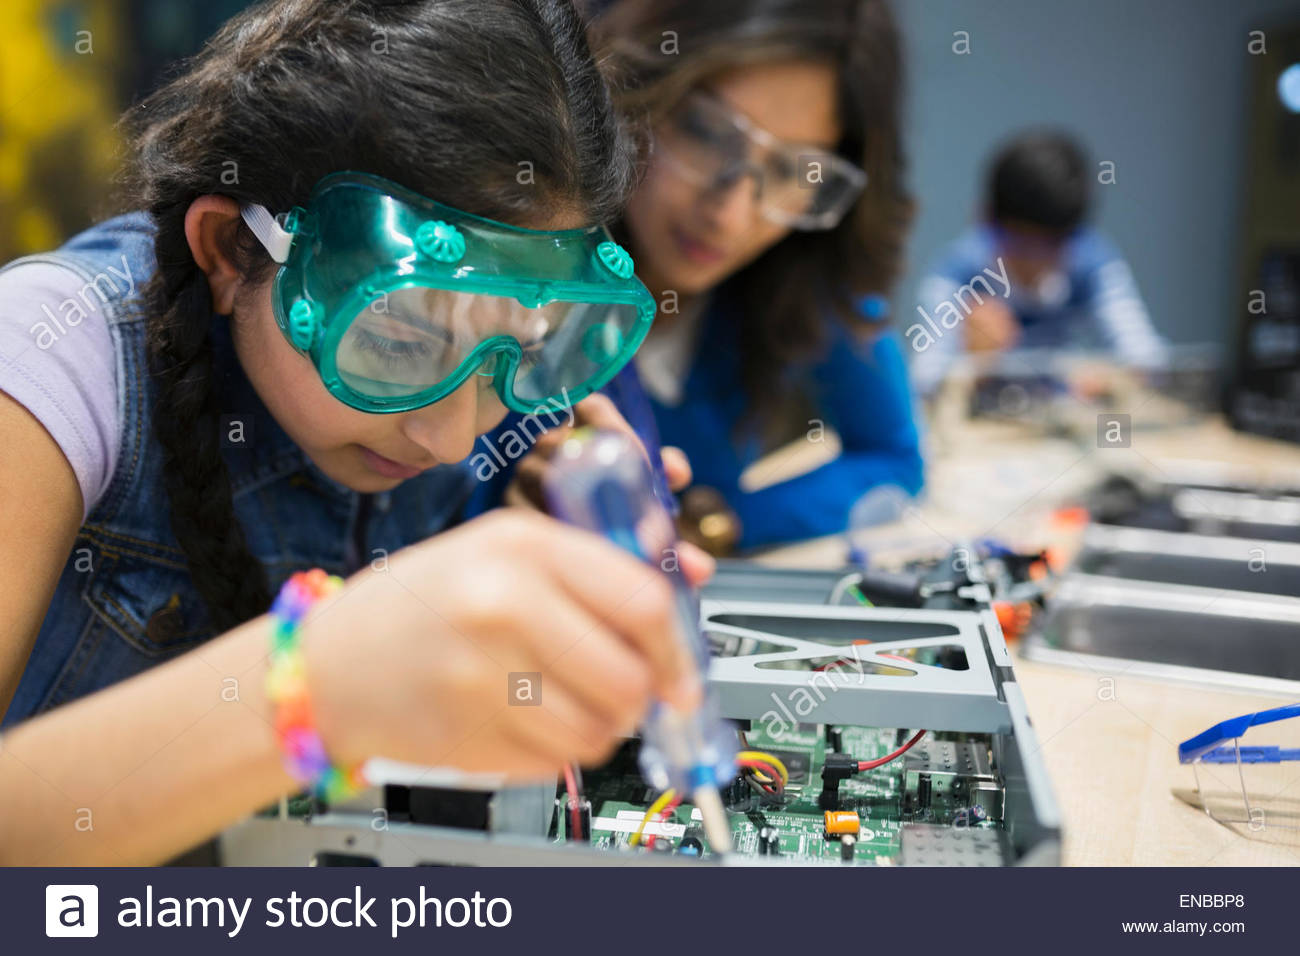 Mother watching daughter assembling electronics at science center - Stock Image